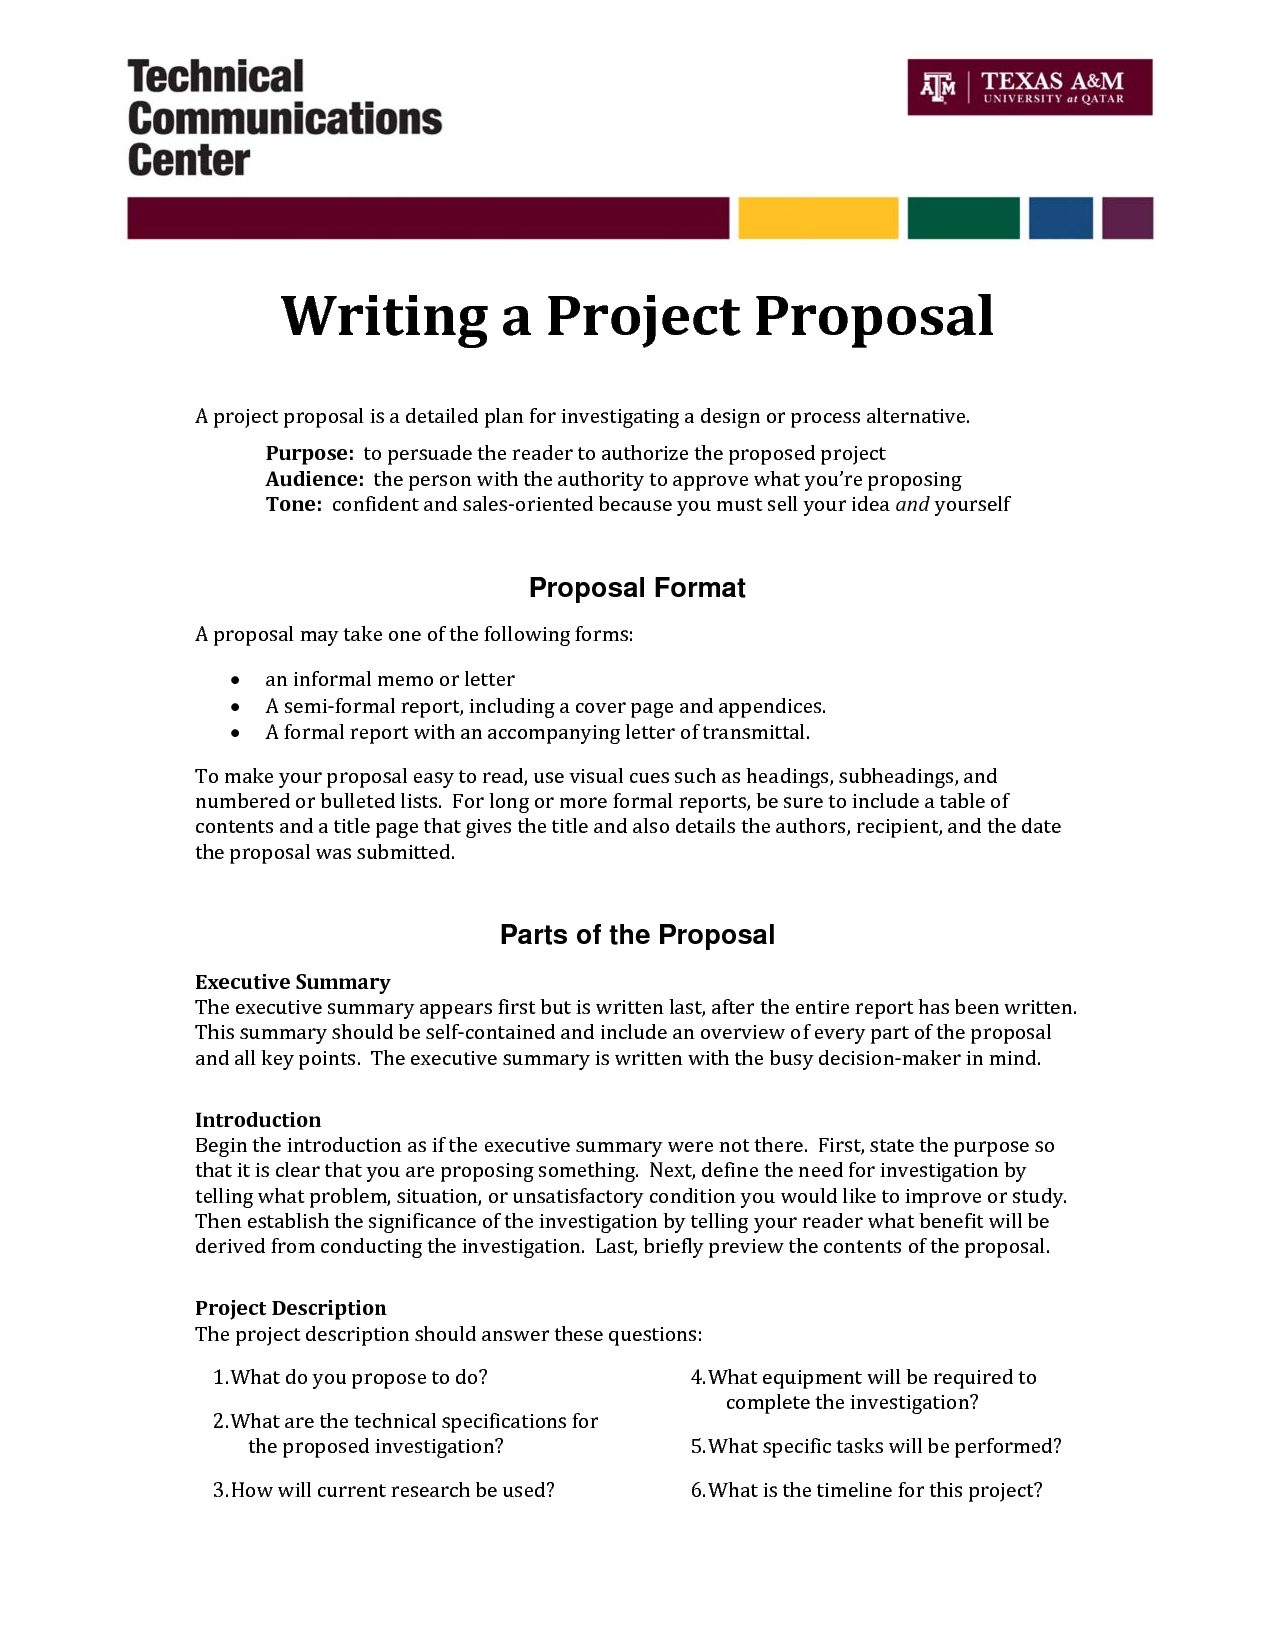 Informal proposal letter example writing a project for Charter school proposal template